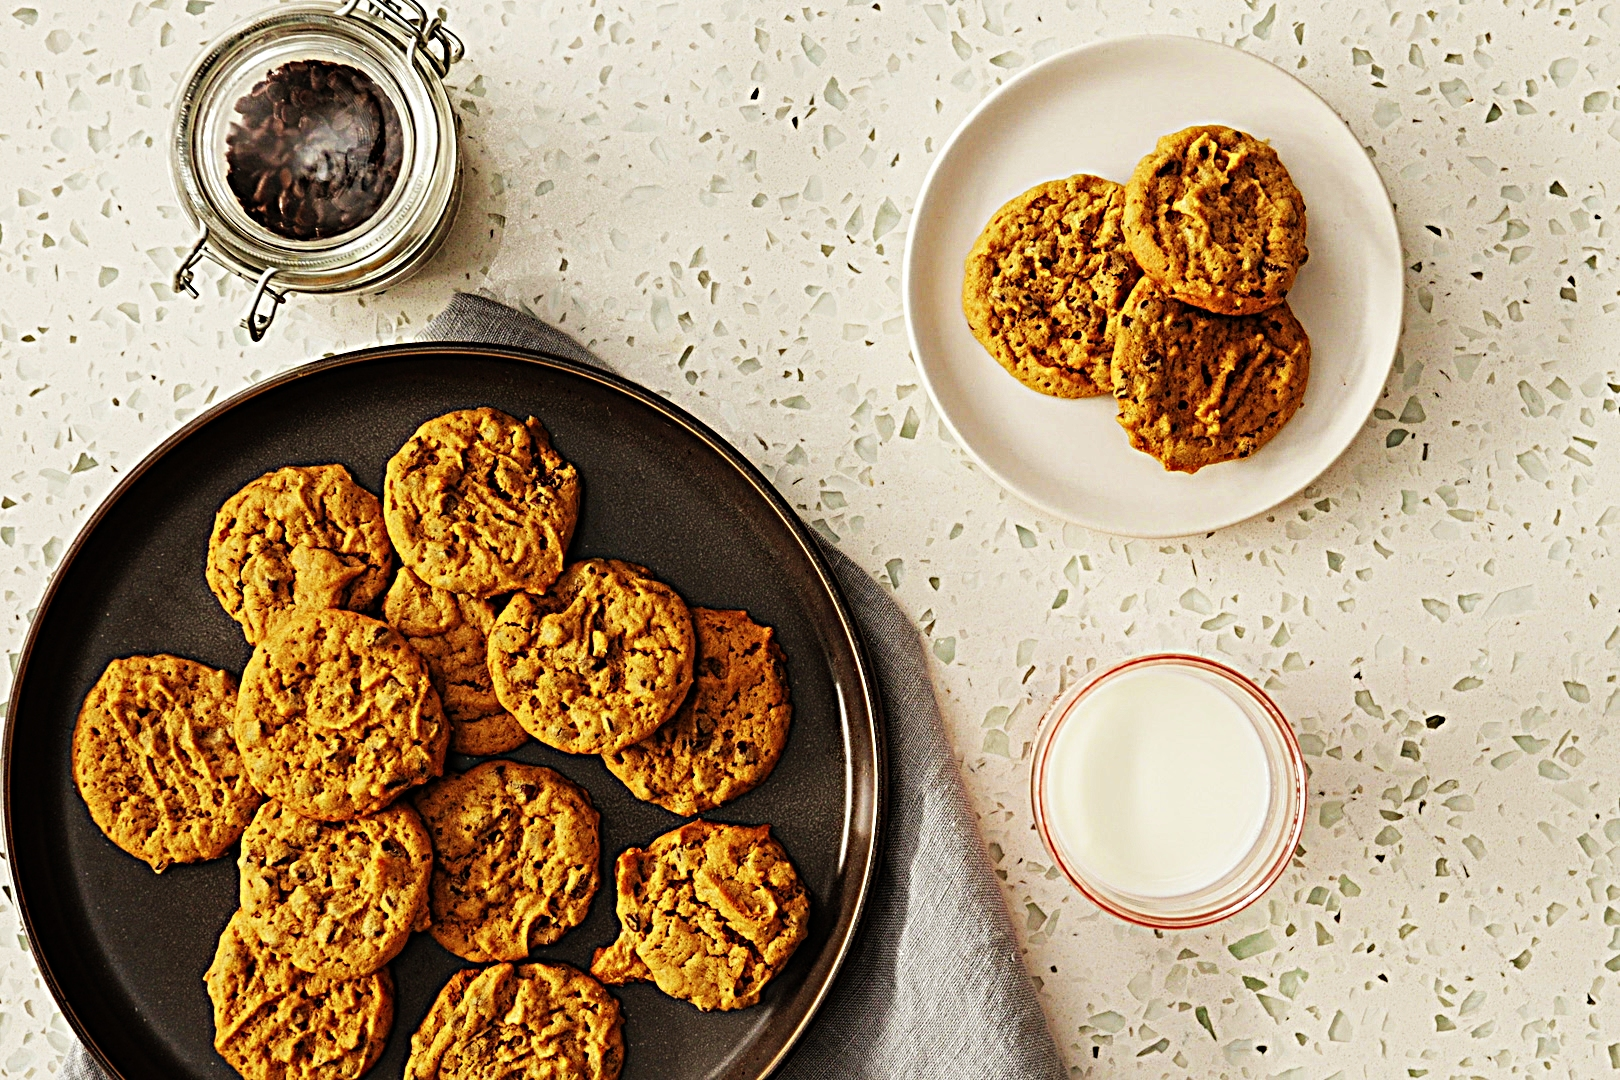 Stupid-Easy Recipe for Flourless Peanut Butter Chocolate Chip Cookies (#1 Top-Rated)